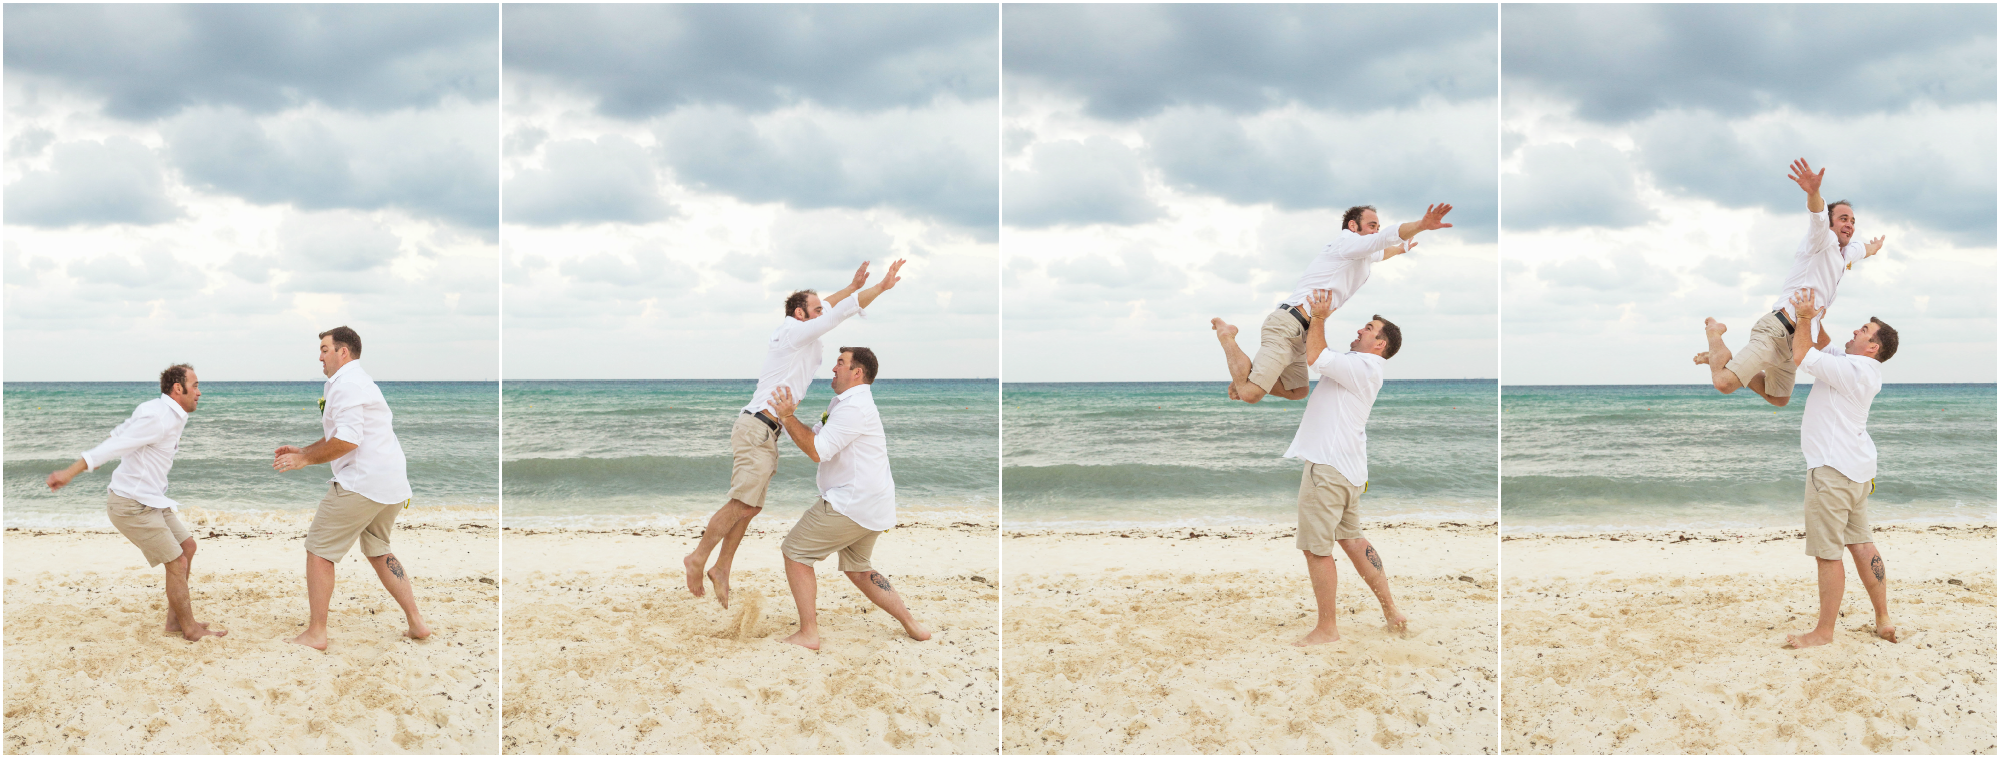 cancun_wedding32b.png